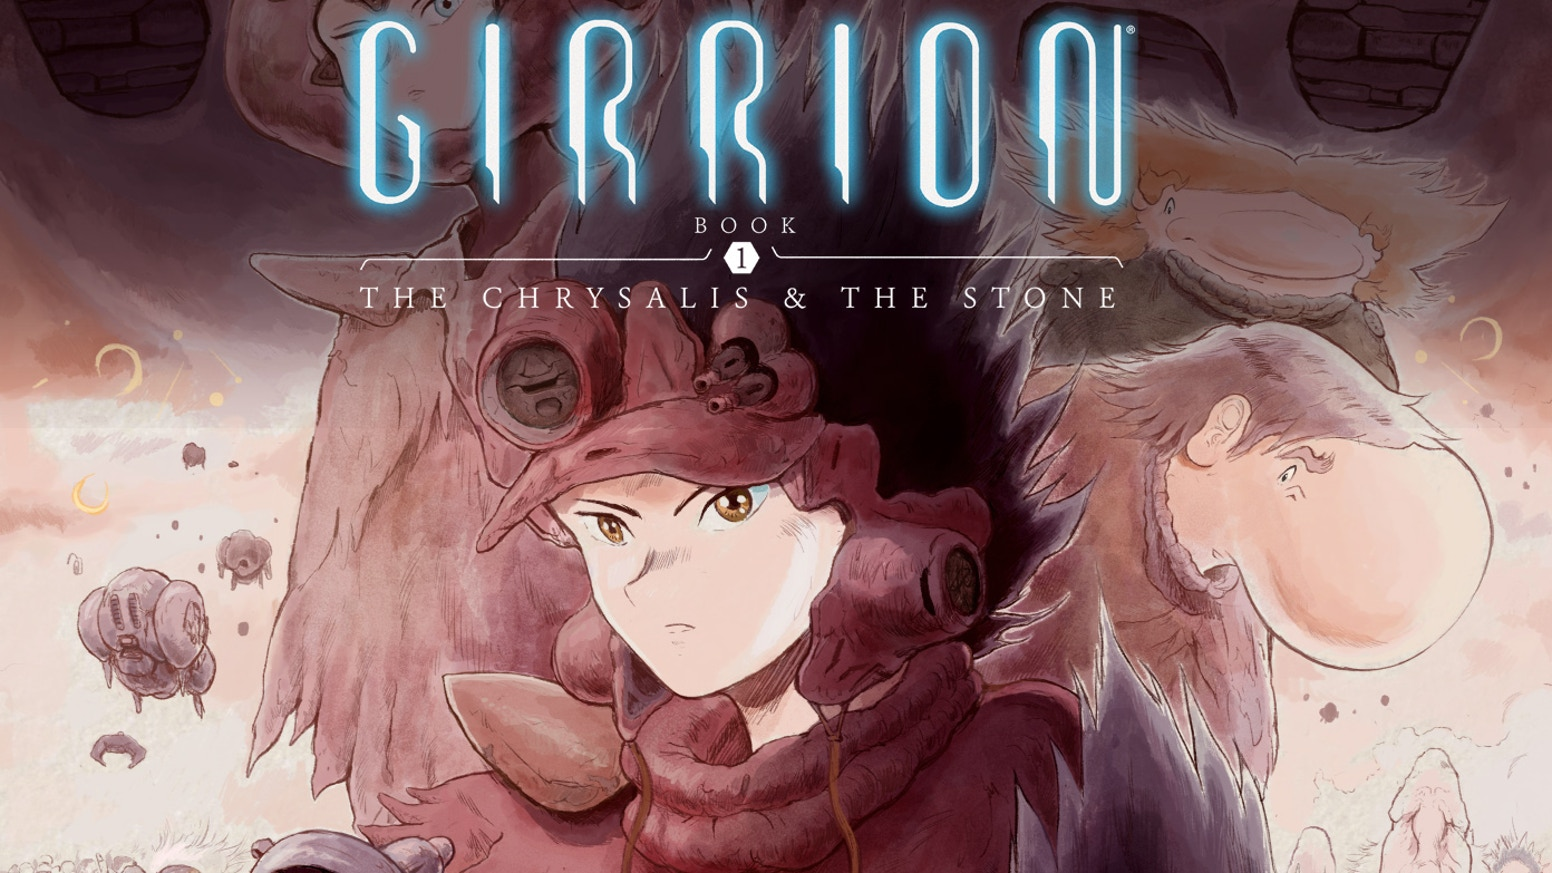 Girrion: The Chrysalis and the Stone – Tra le pagine di una guerra magica thumbnail